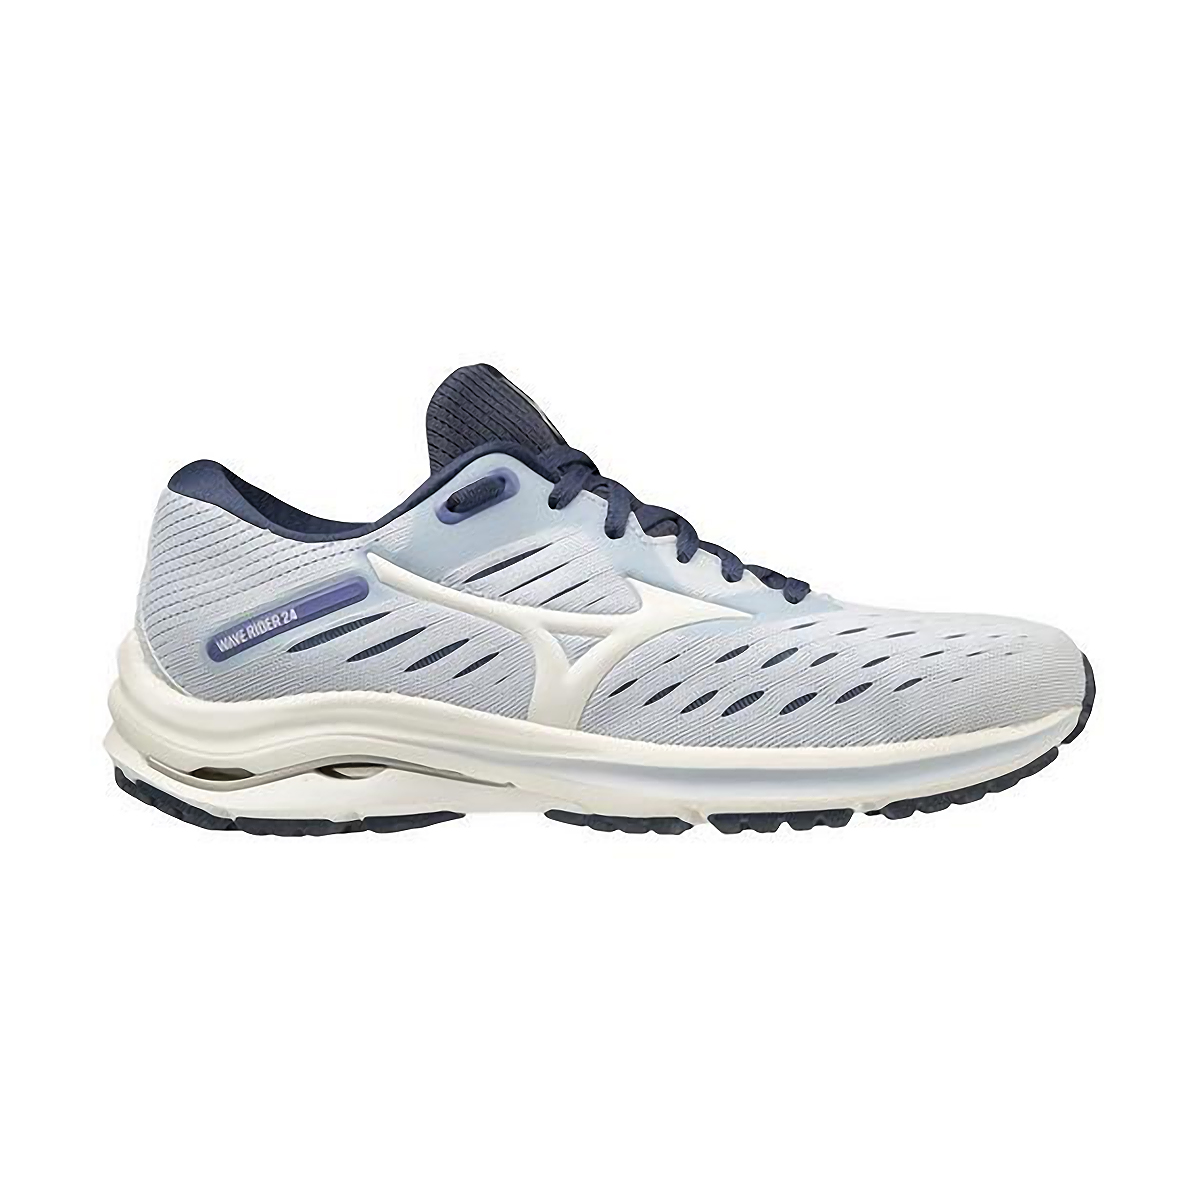 Women's Mizuno Wave Rider 24 Running Shoe - Color: Arctic Ice/Snow White - Size: 6 - Width: Regular, Arctic Ice/Snow White, large, image 1